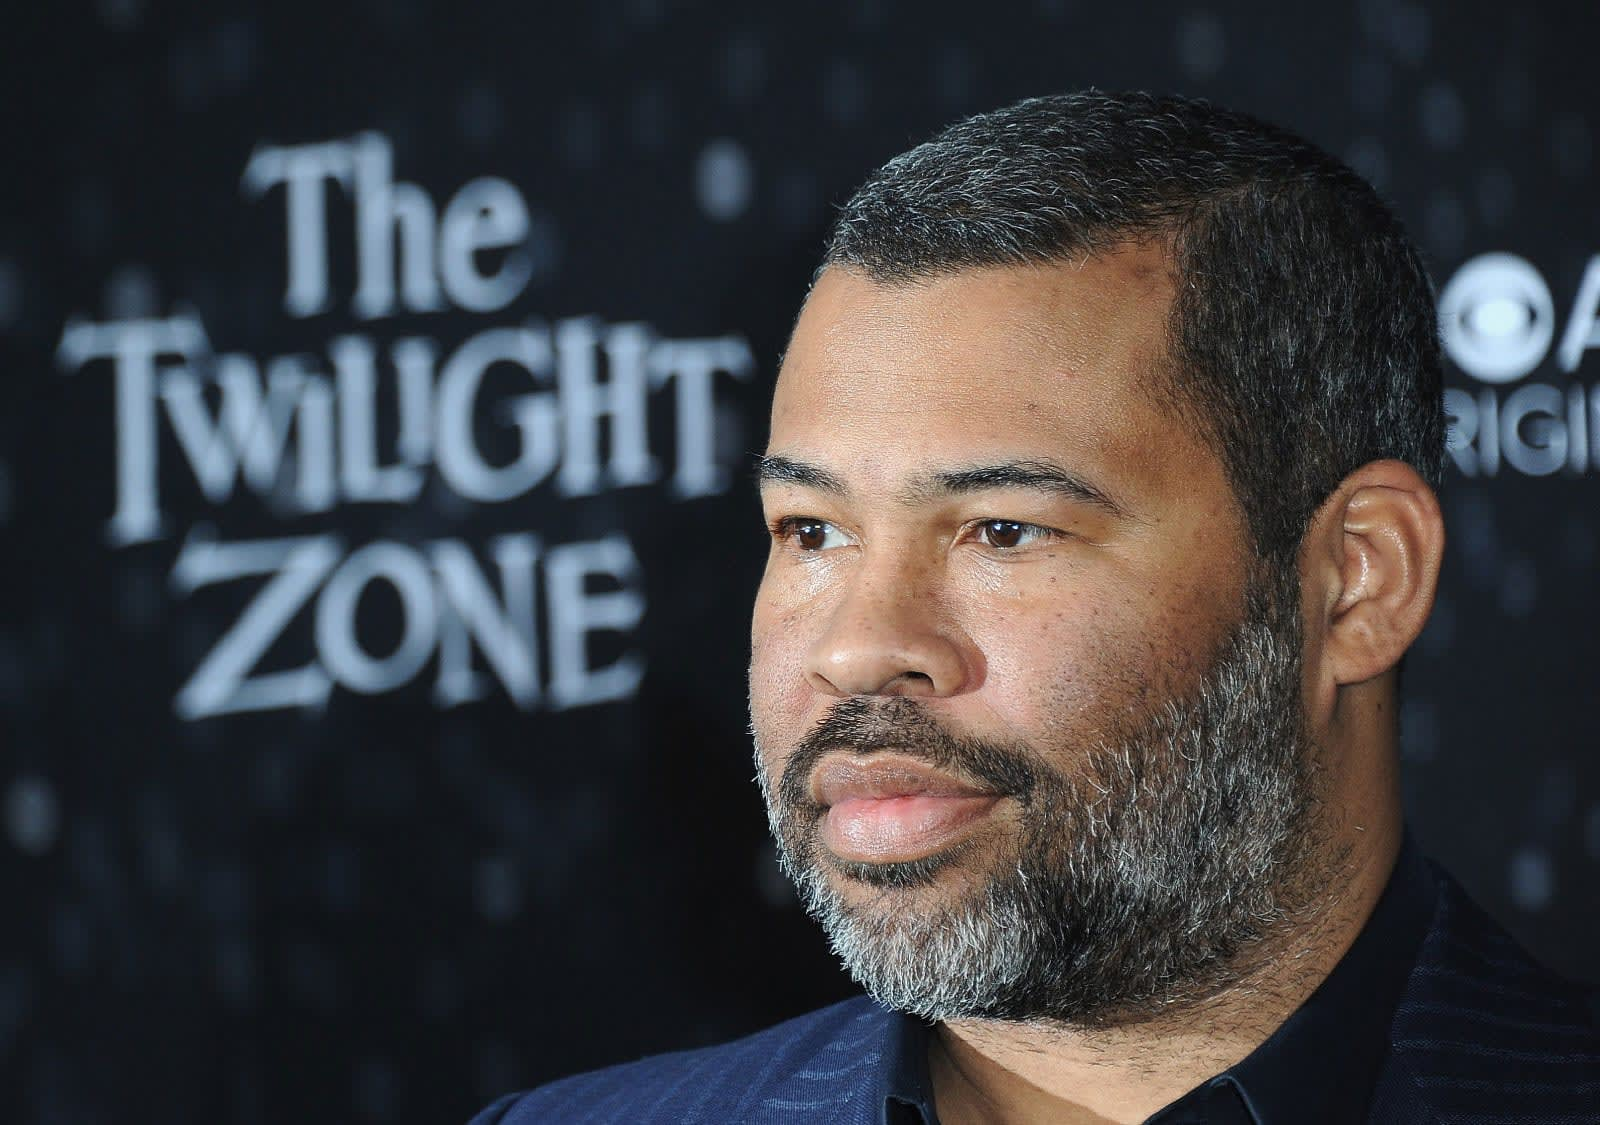 'The Twilight Zone' will get a second season on CBS All Access